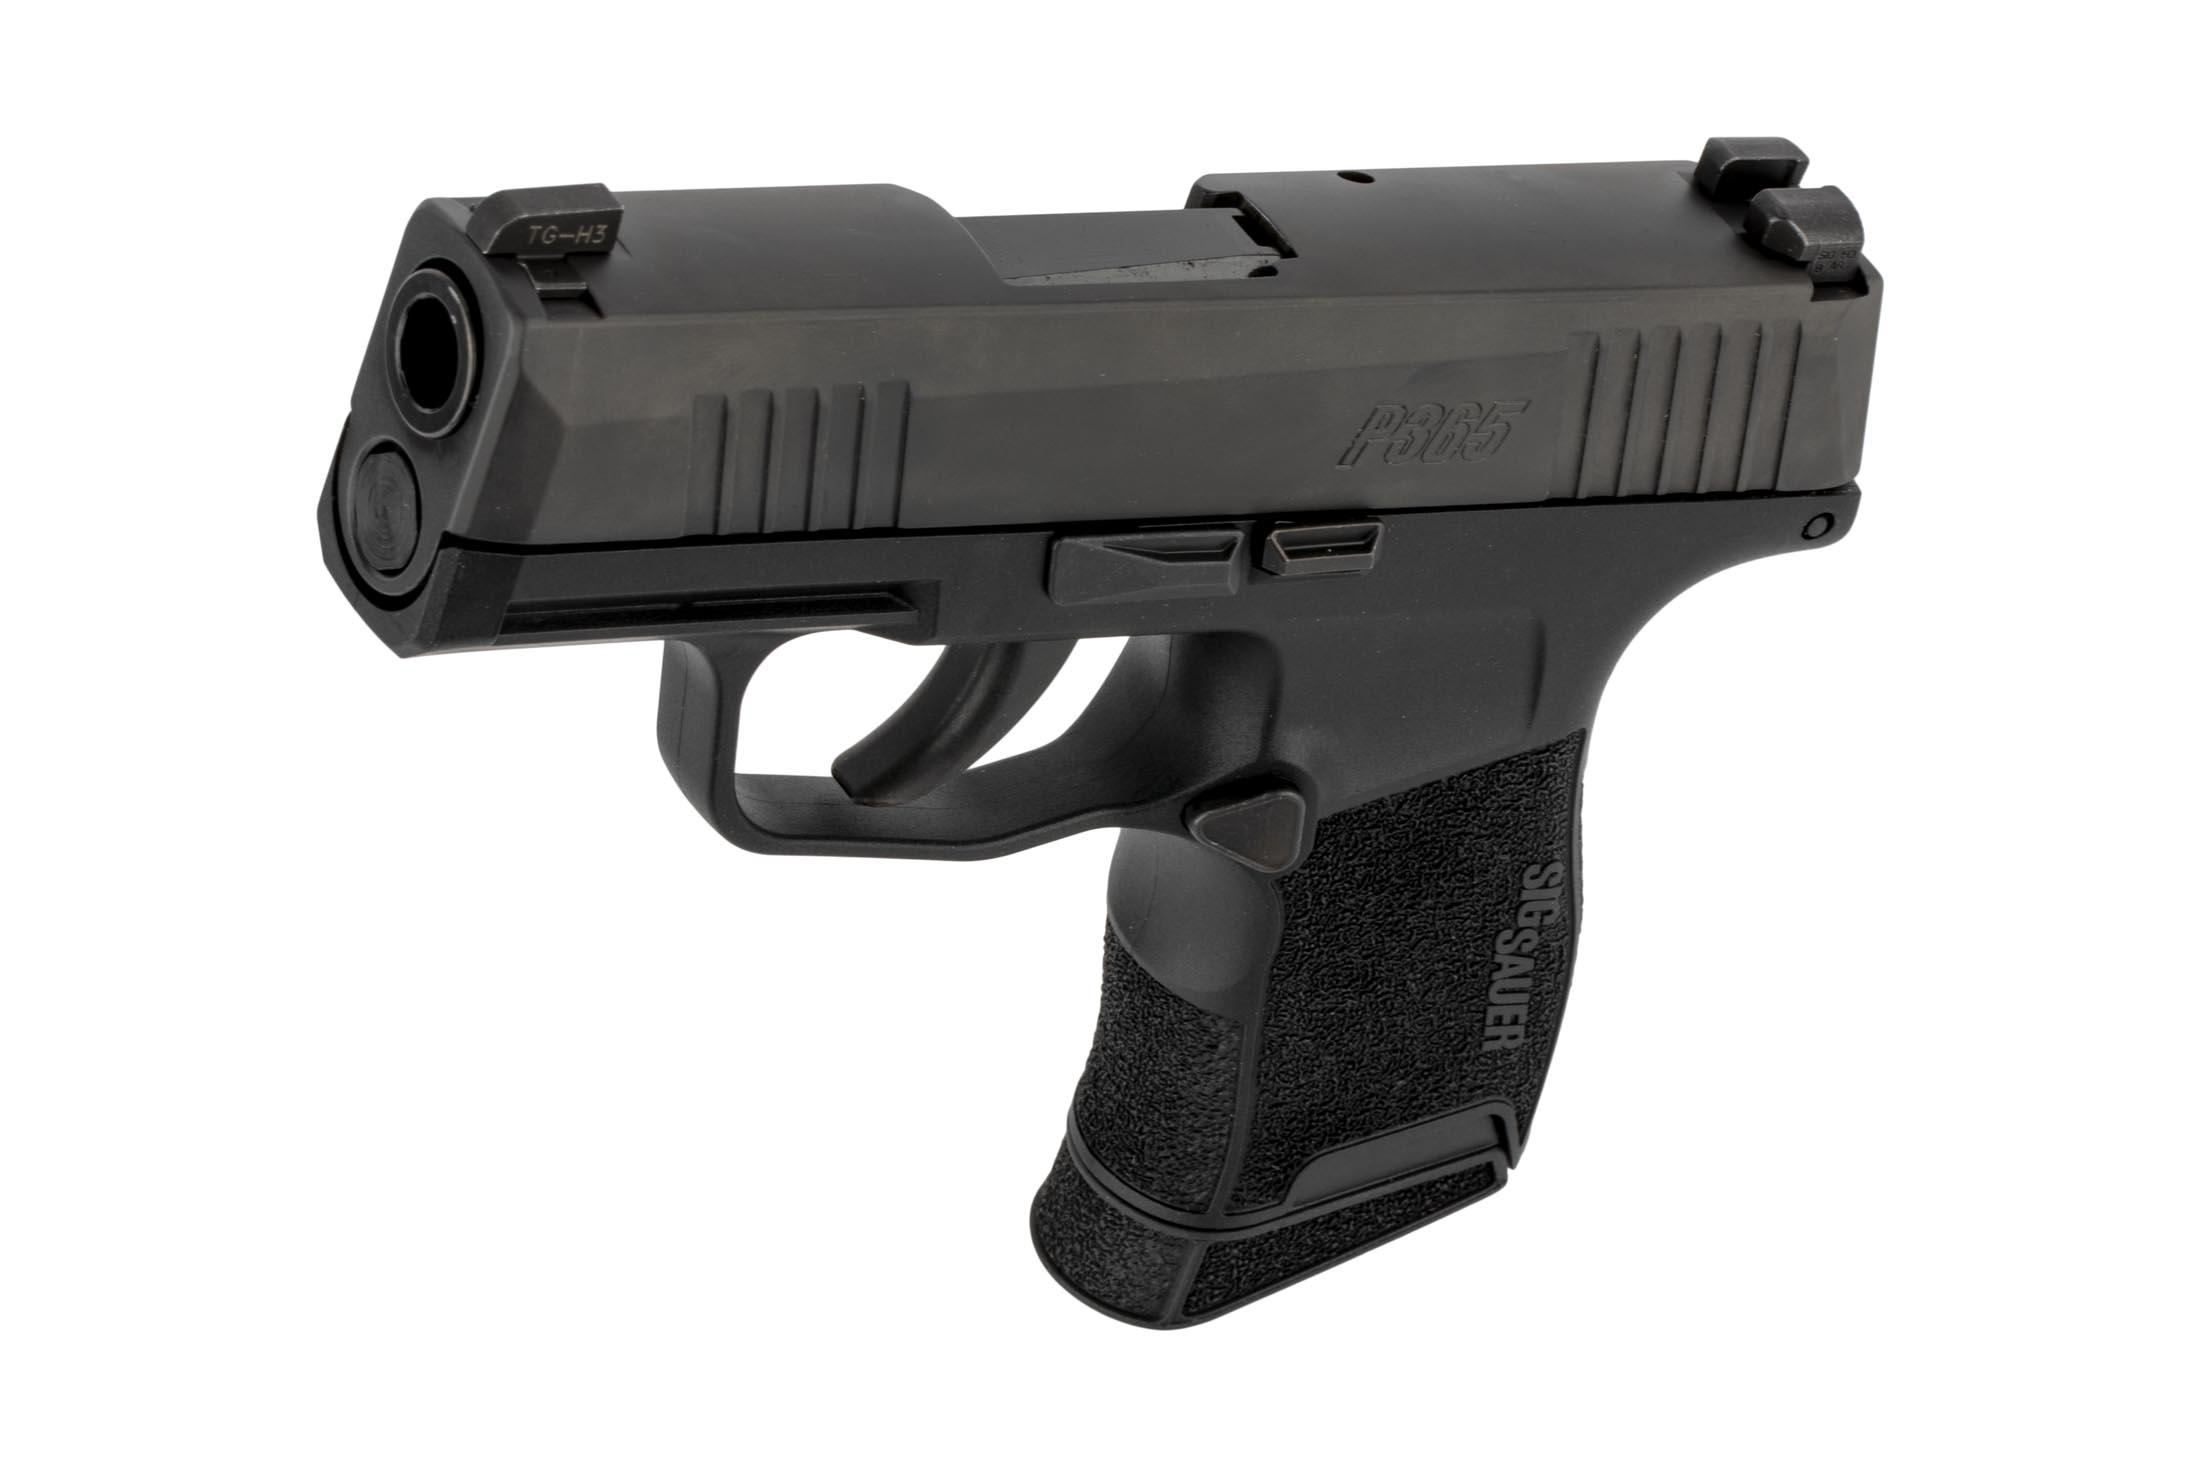 SIG Sauer 9x19mm P365 compact handgun features contoured controls for minimal snag chance but easy manipulations.